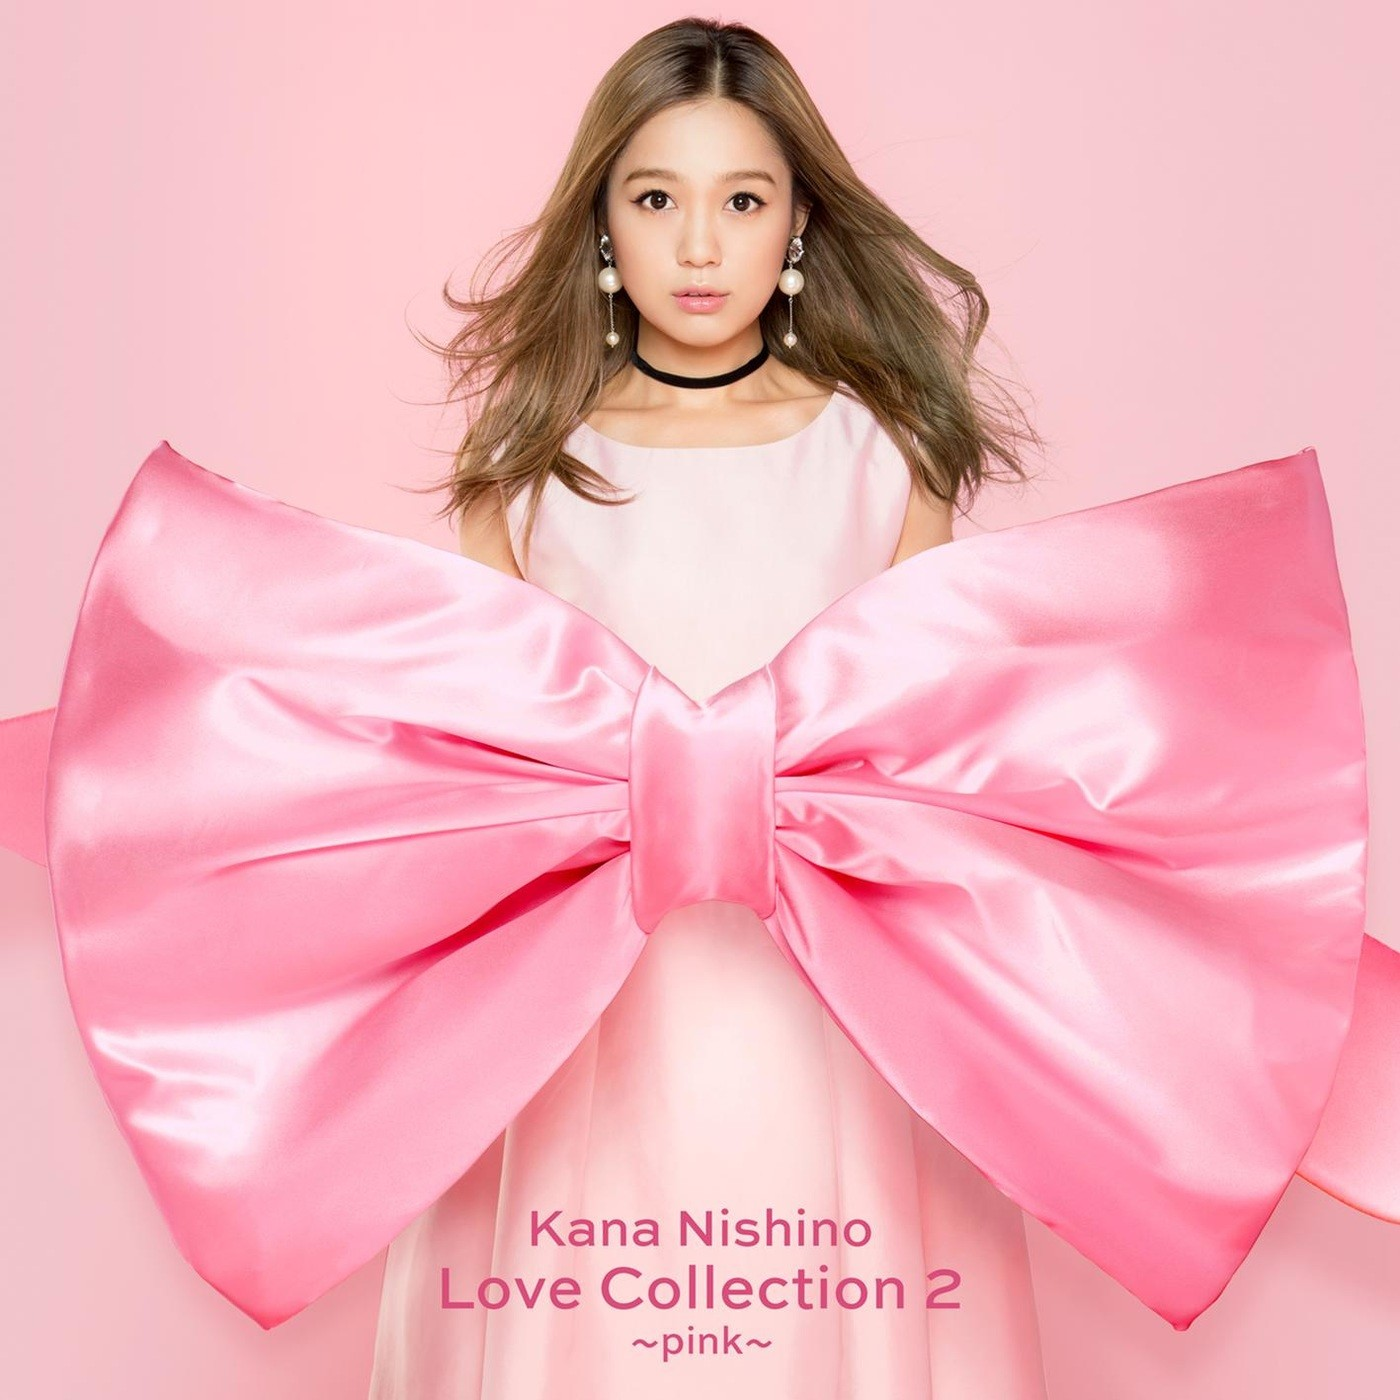 西野カナ (Kana Nishino) – Love Collection 2 ~pink~ [FLAC + MP3 320 / WEB] [2018.11.21]